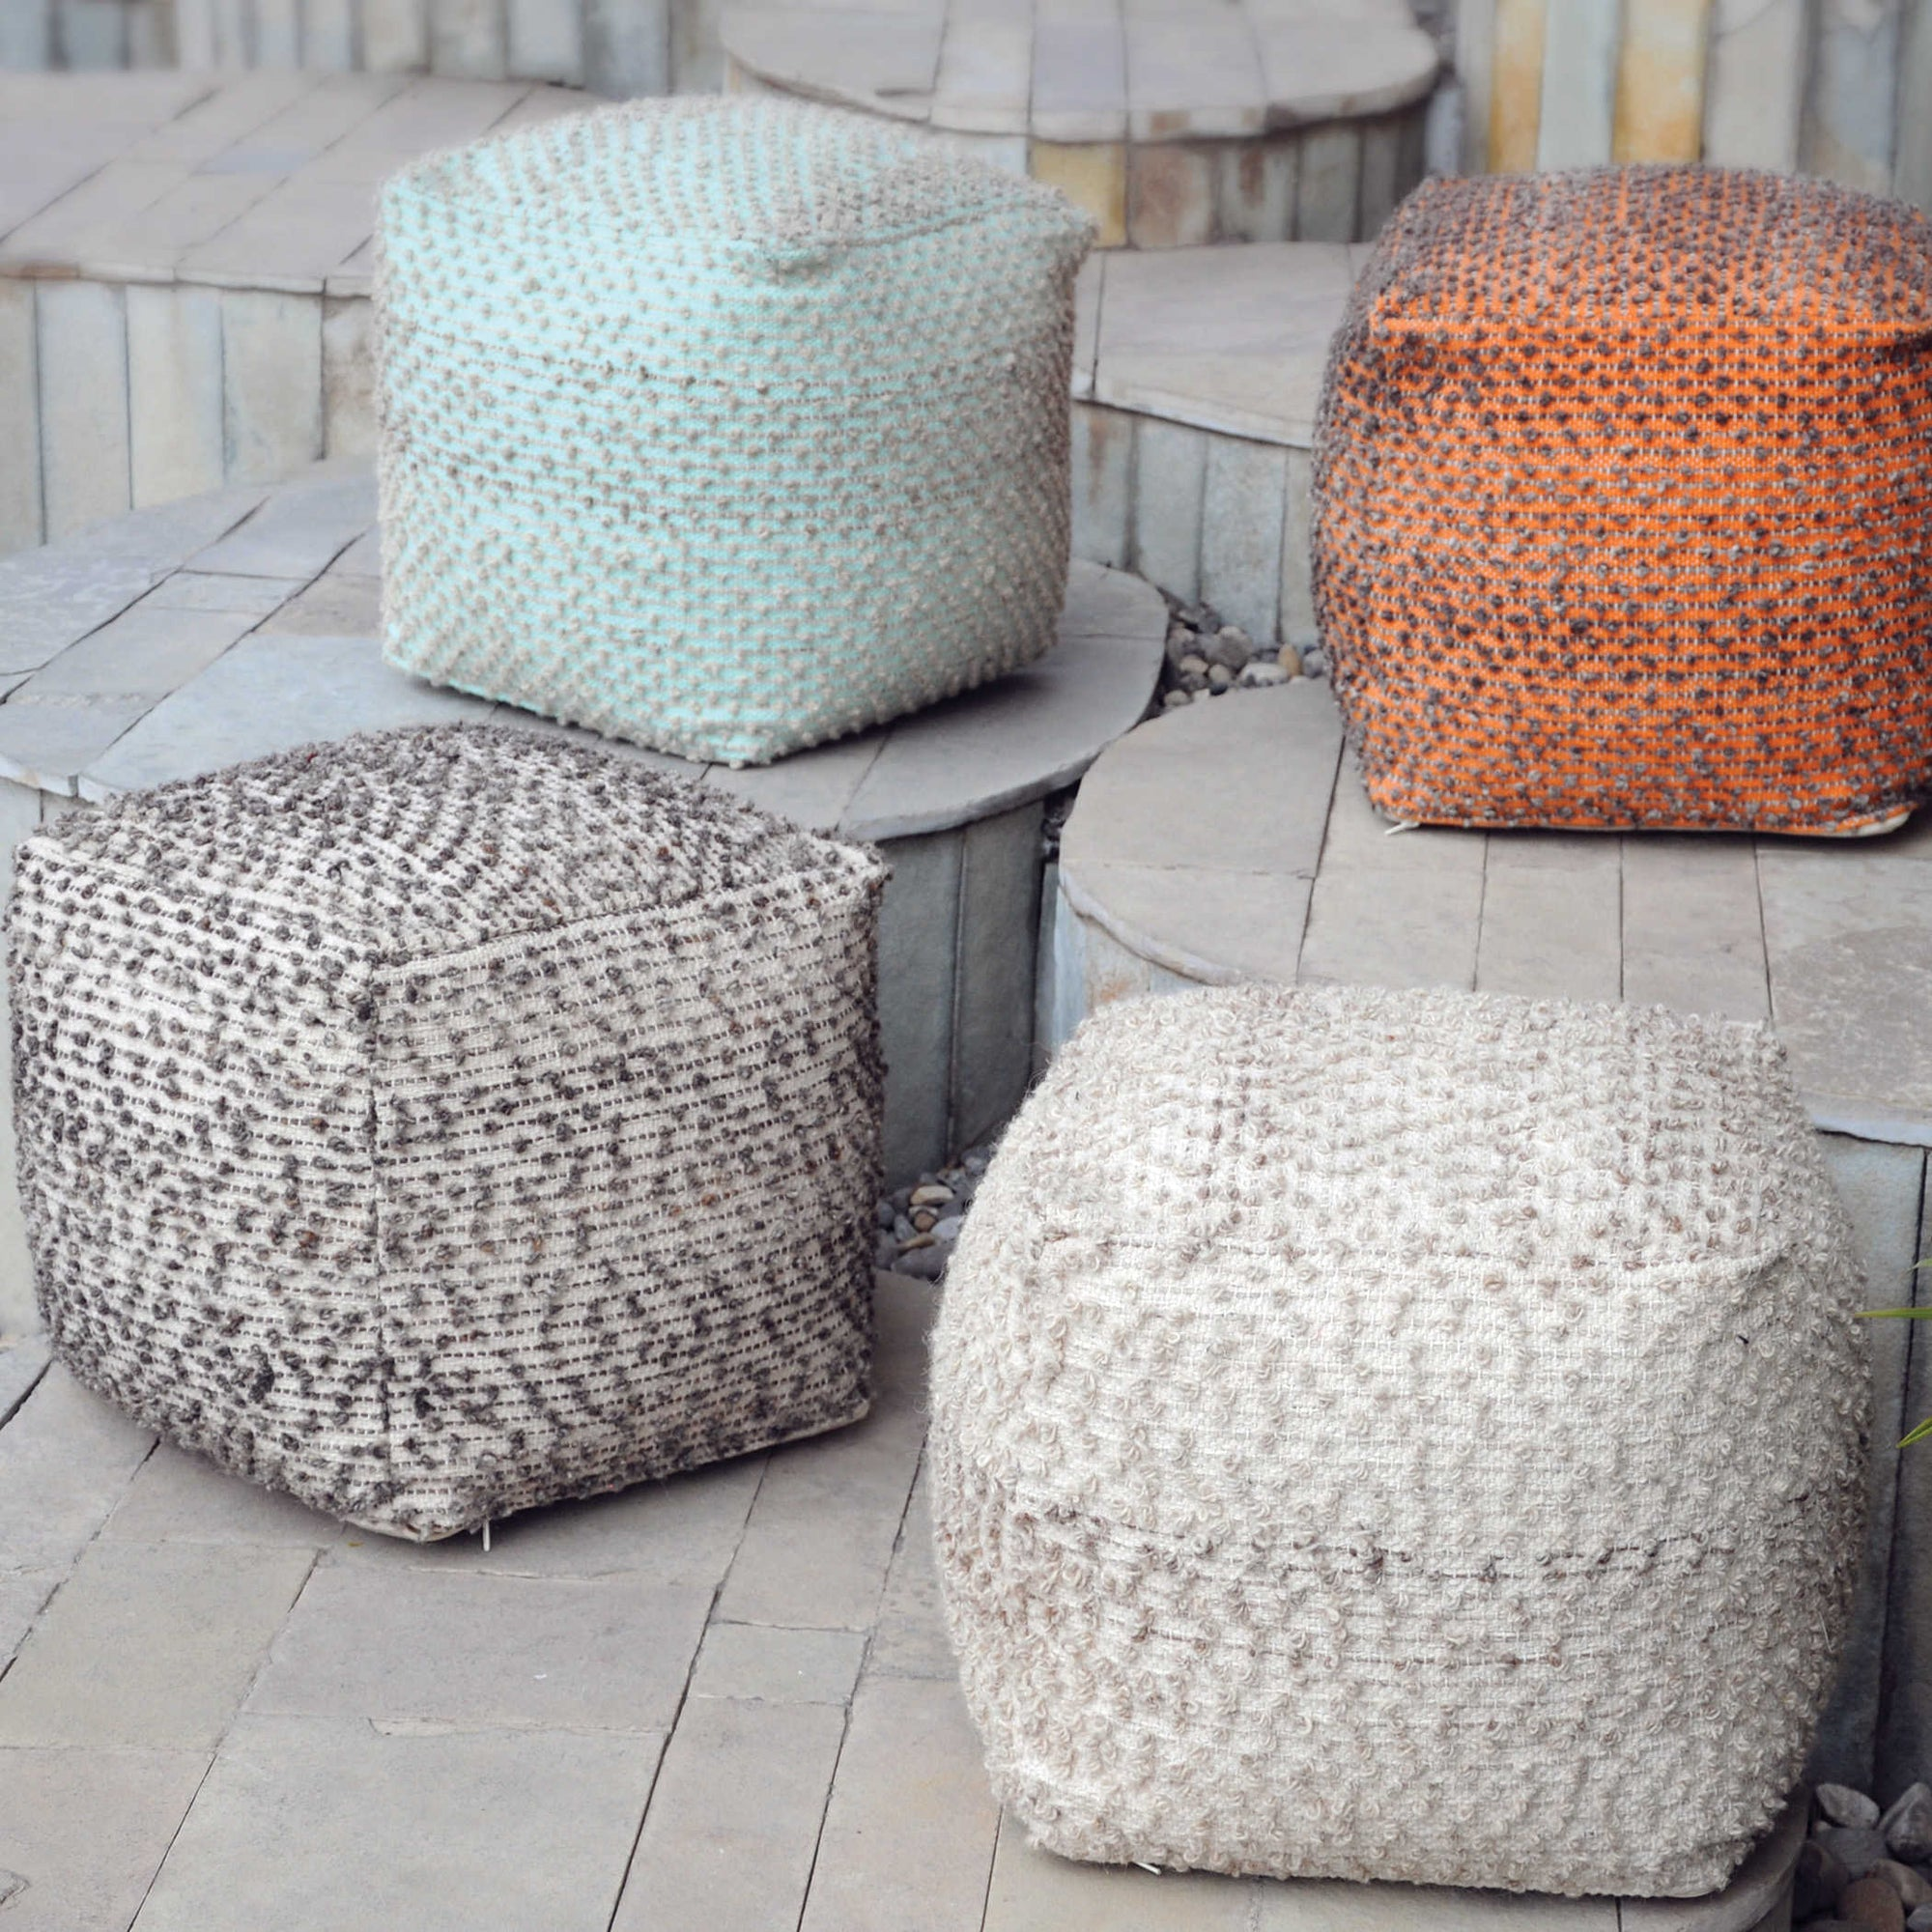 Four Handwoven Poufs with a neutral beige cotton, grey, orange and aqua marine.